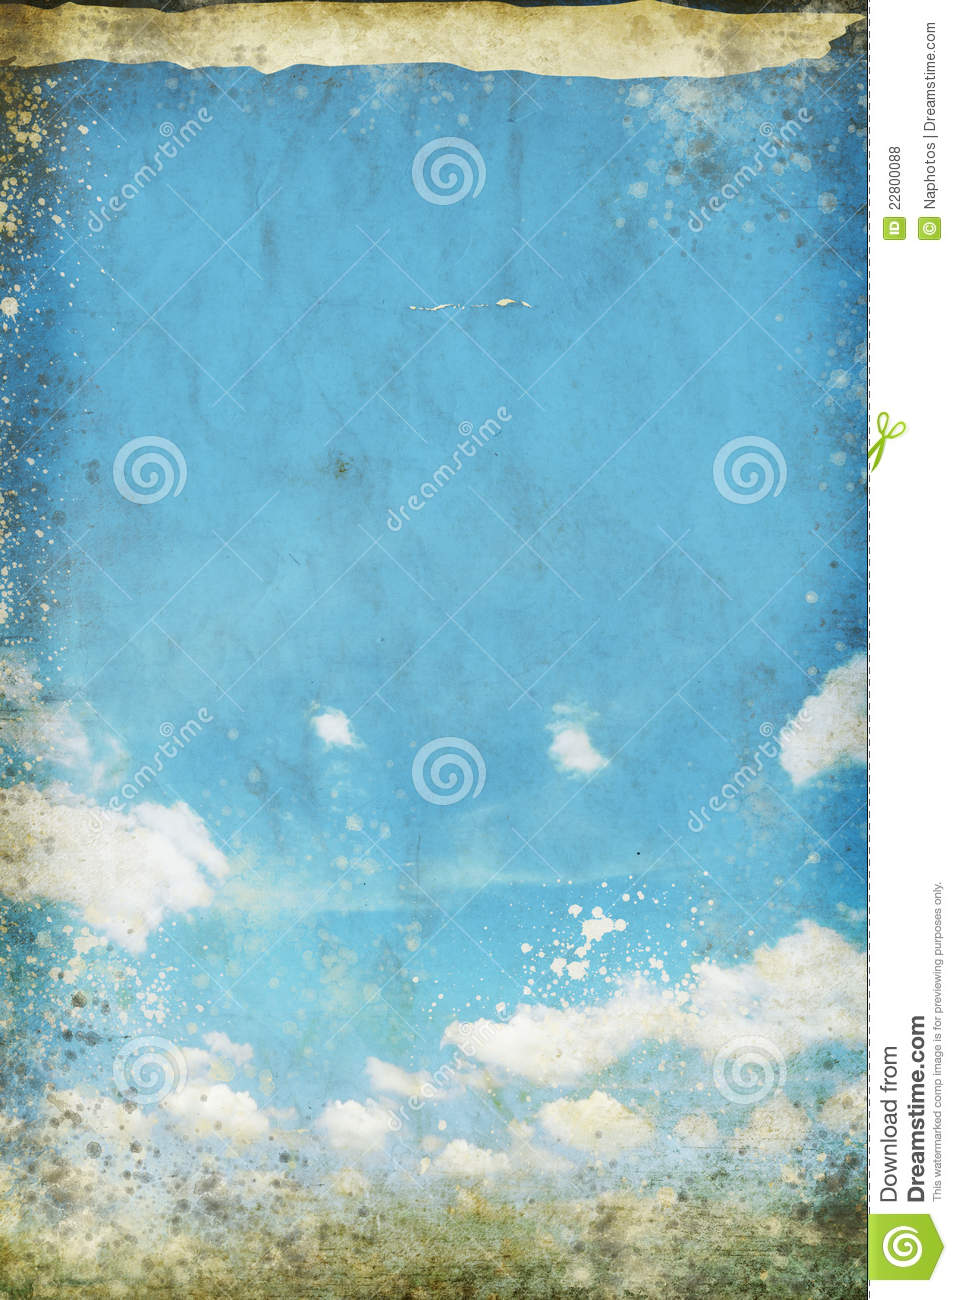 Blue sky and cloud on old grunge paper